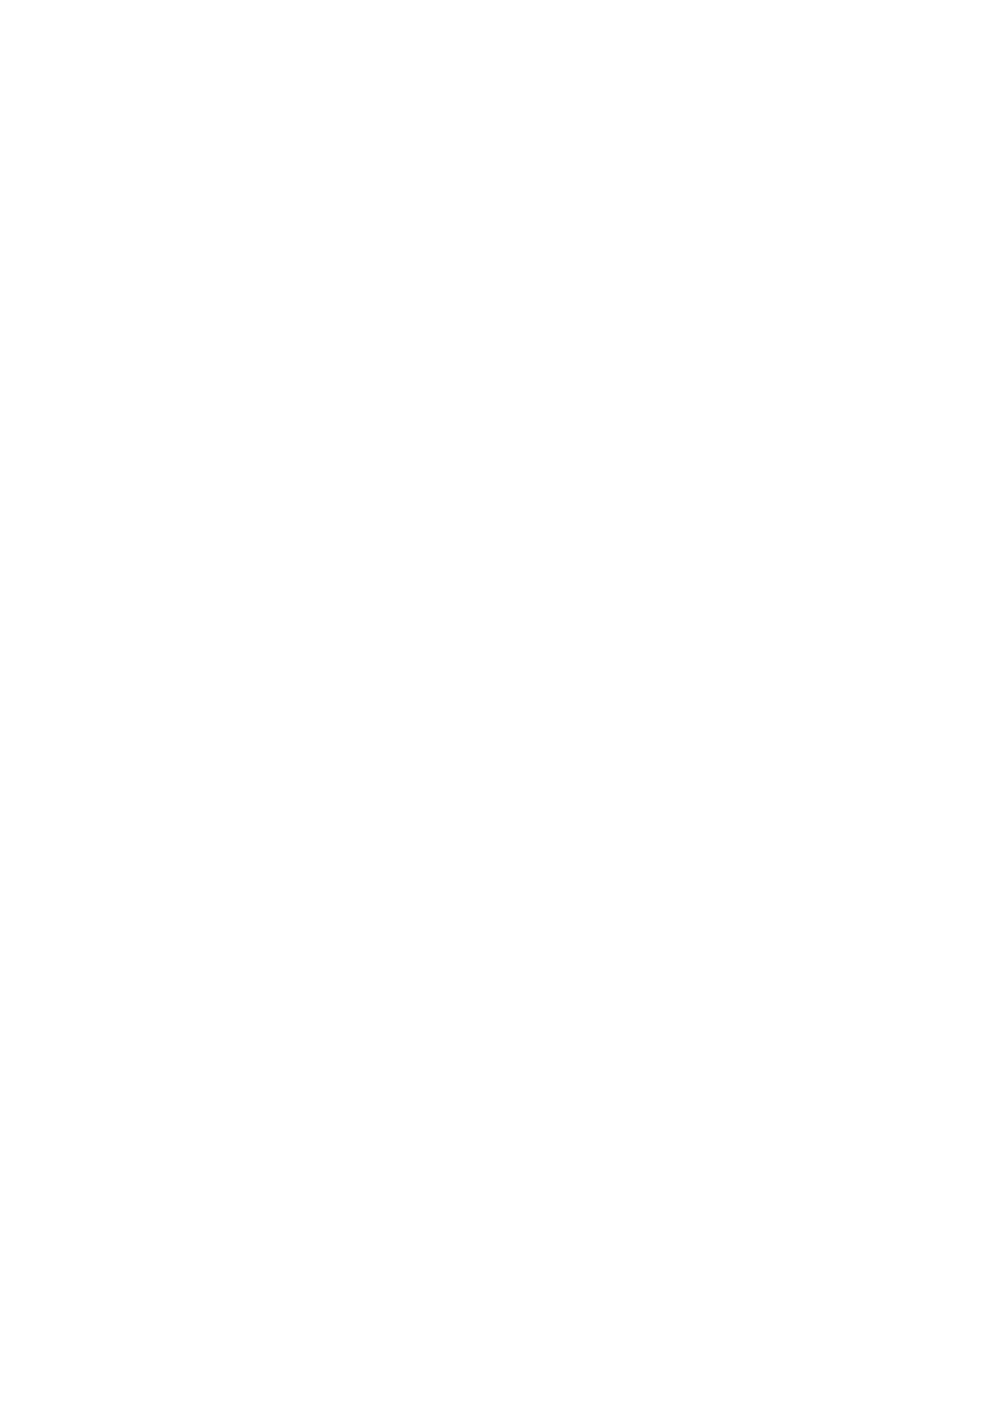 ACCOUTERFOUR-02-01.png